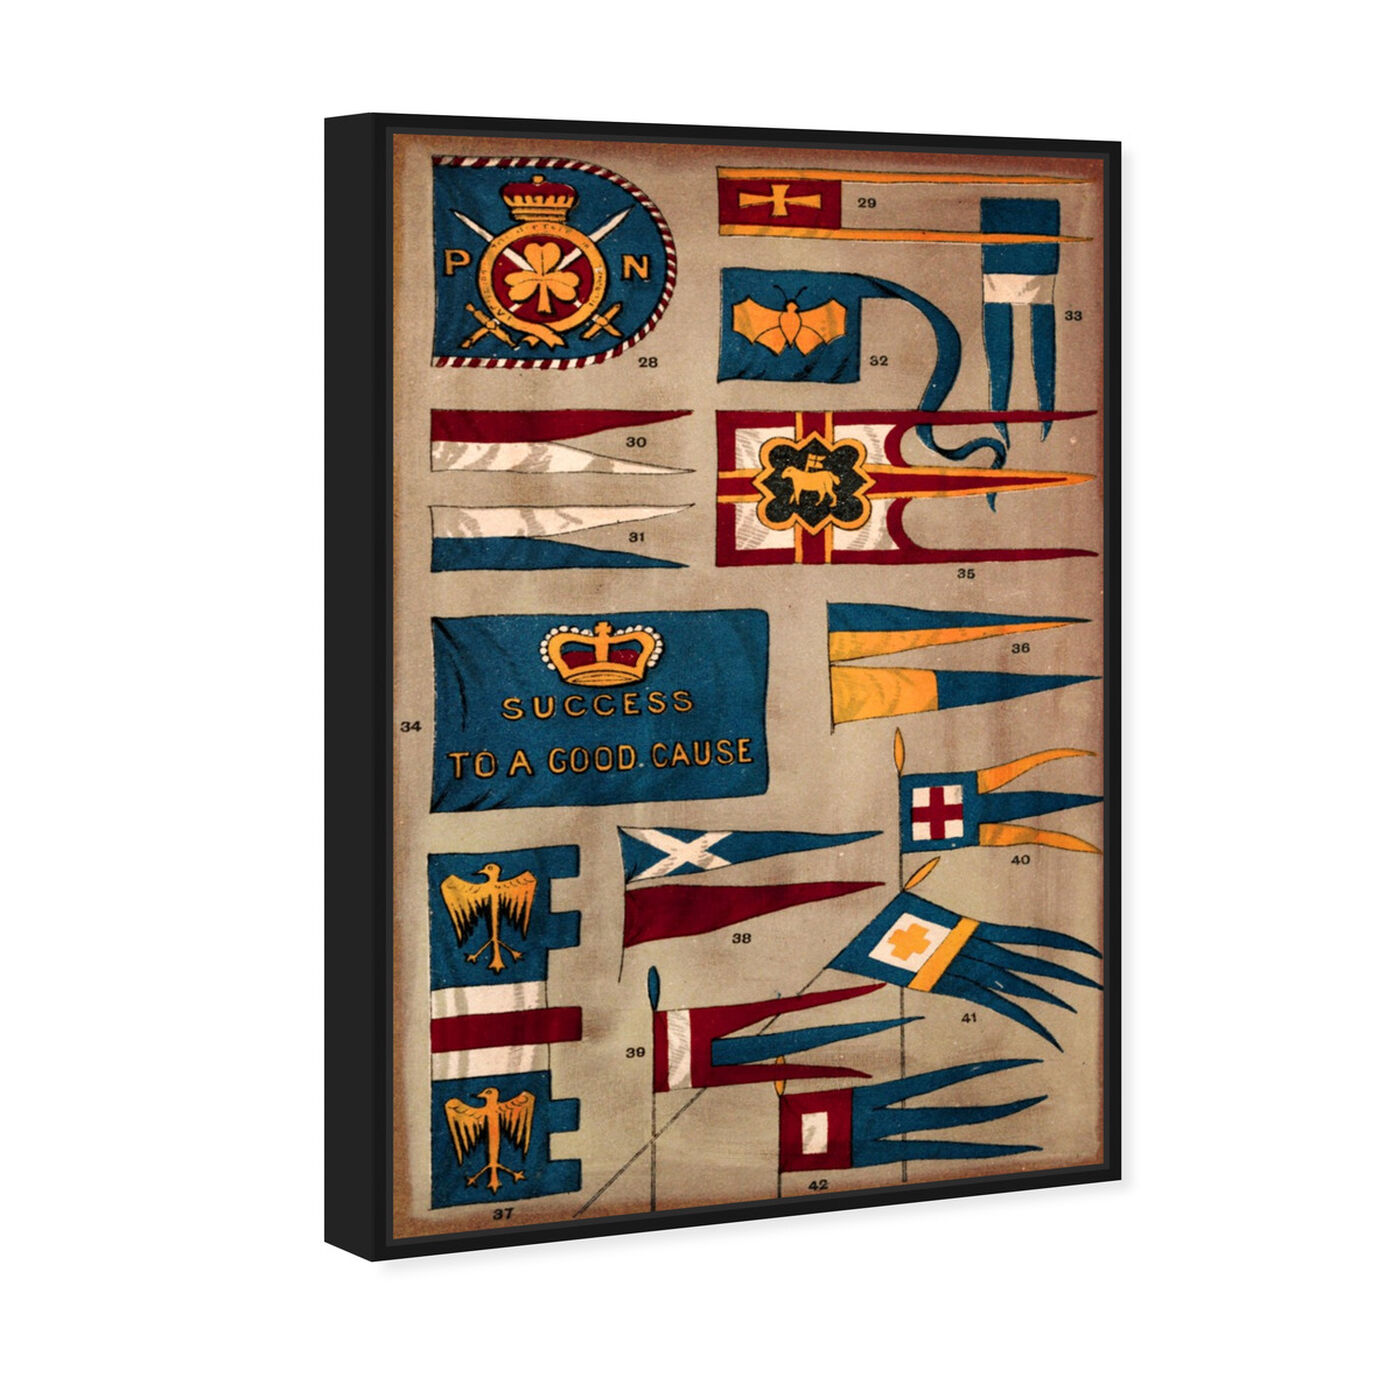 Angled view of Kingdom Flags featuring maps and flags and flags art.